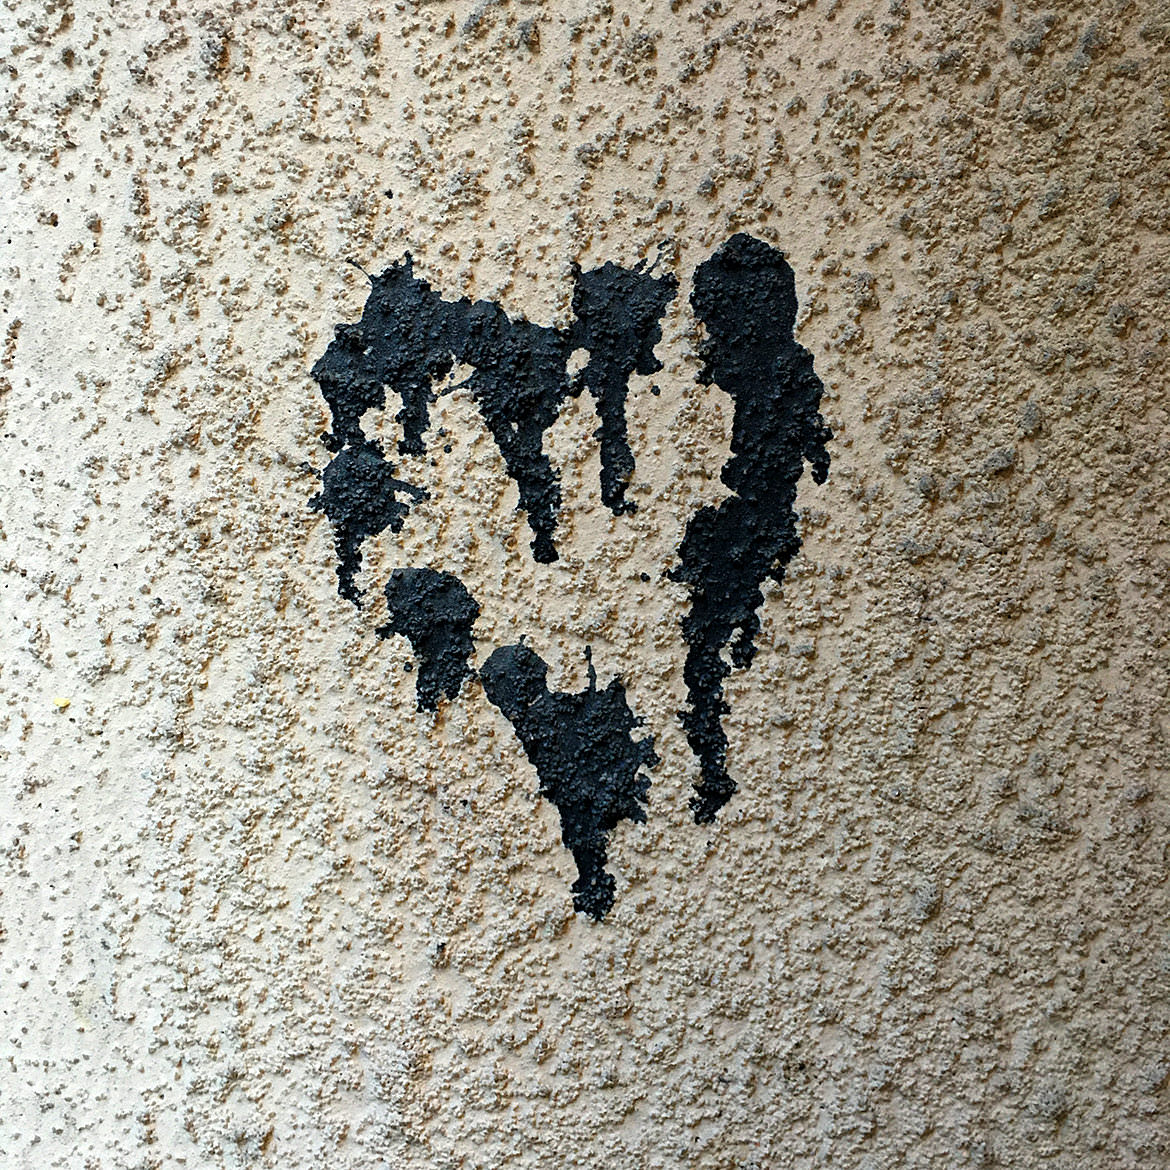 A black heart shape made of industrial glue remains on a stucco wall